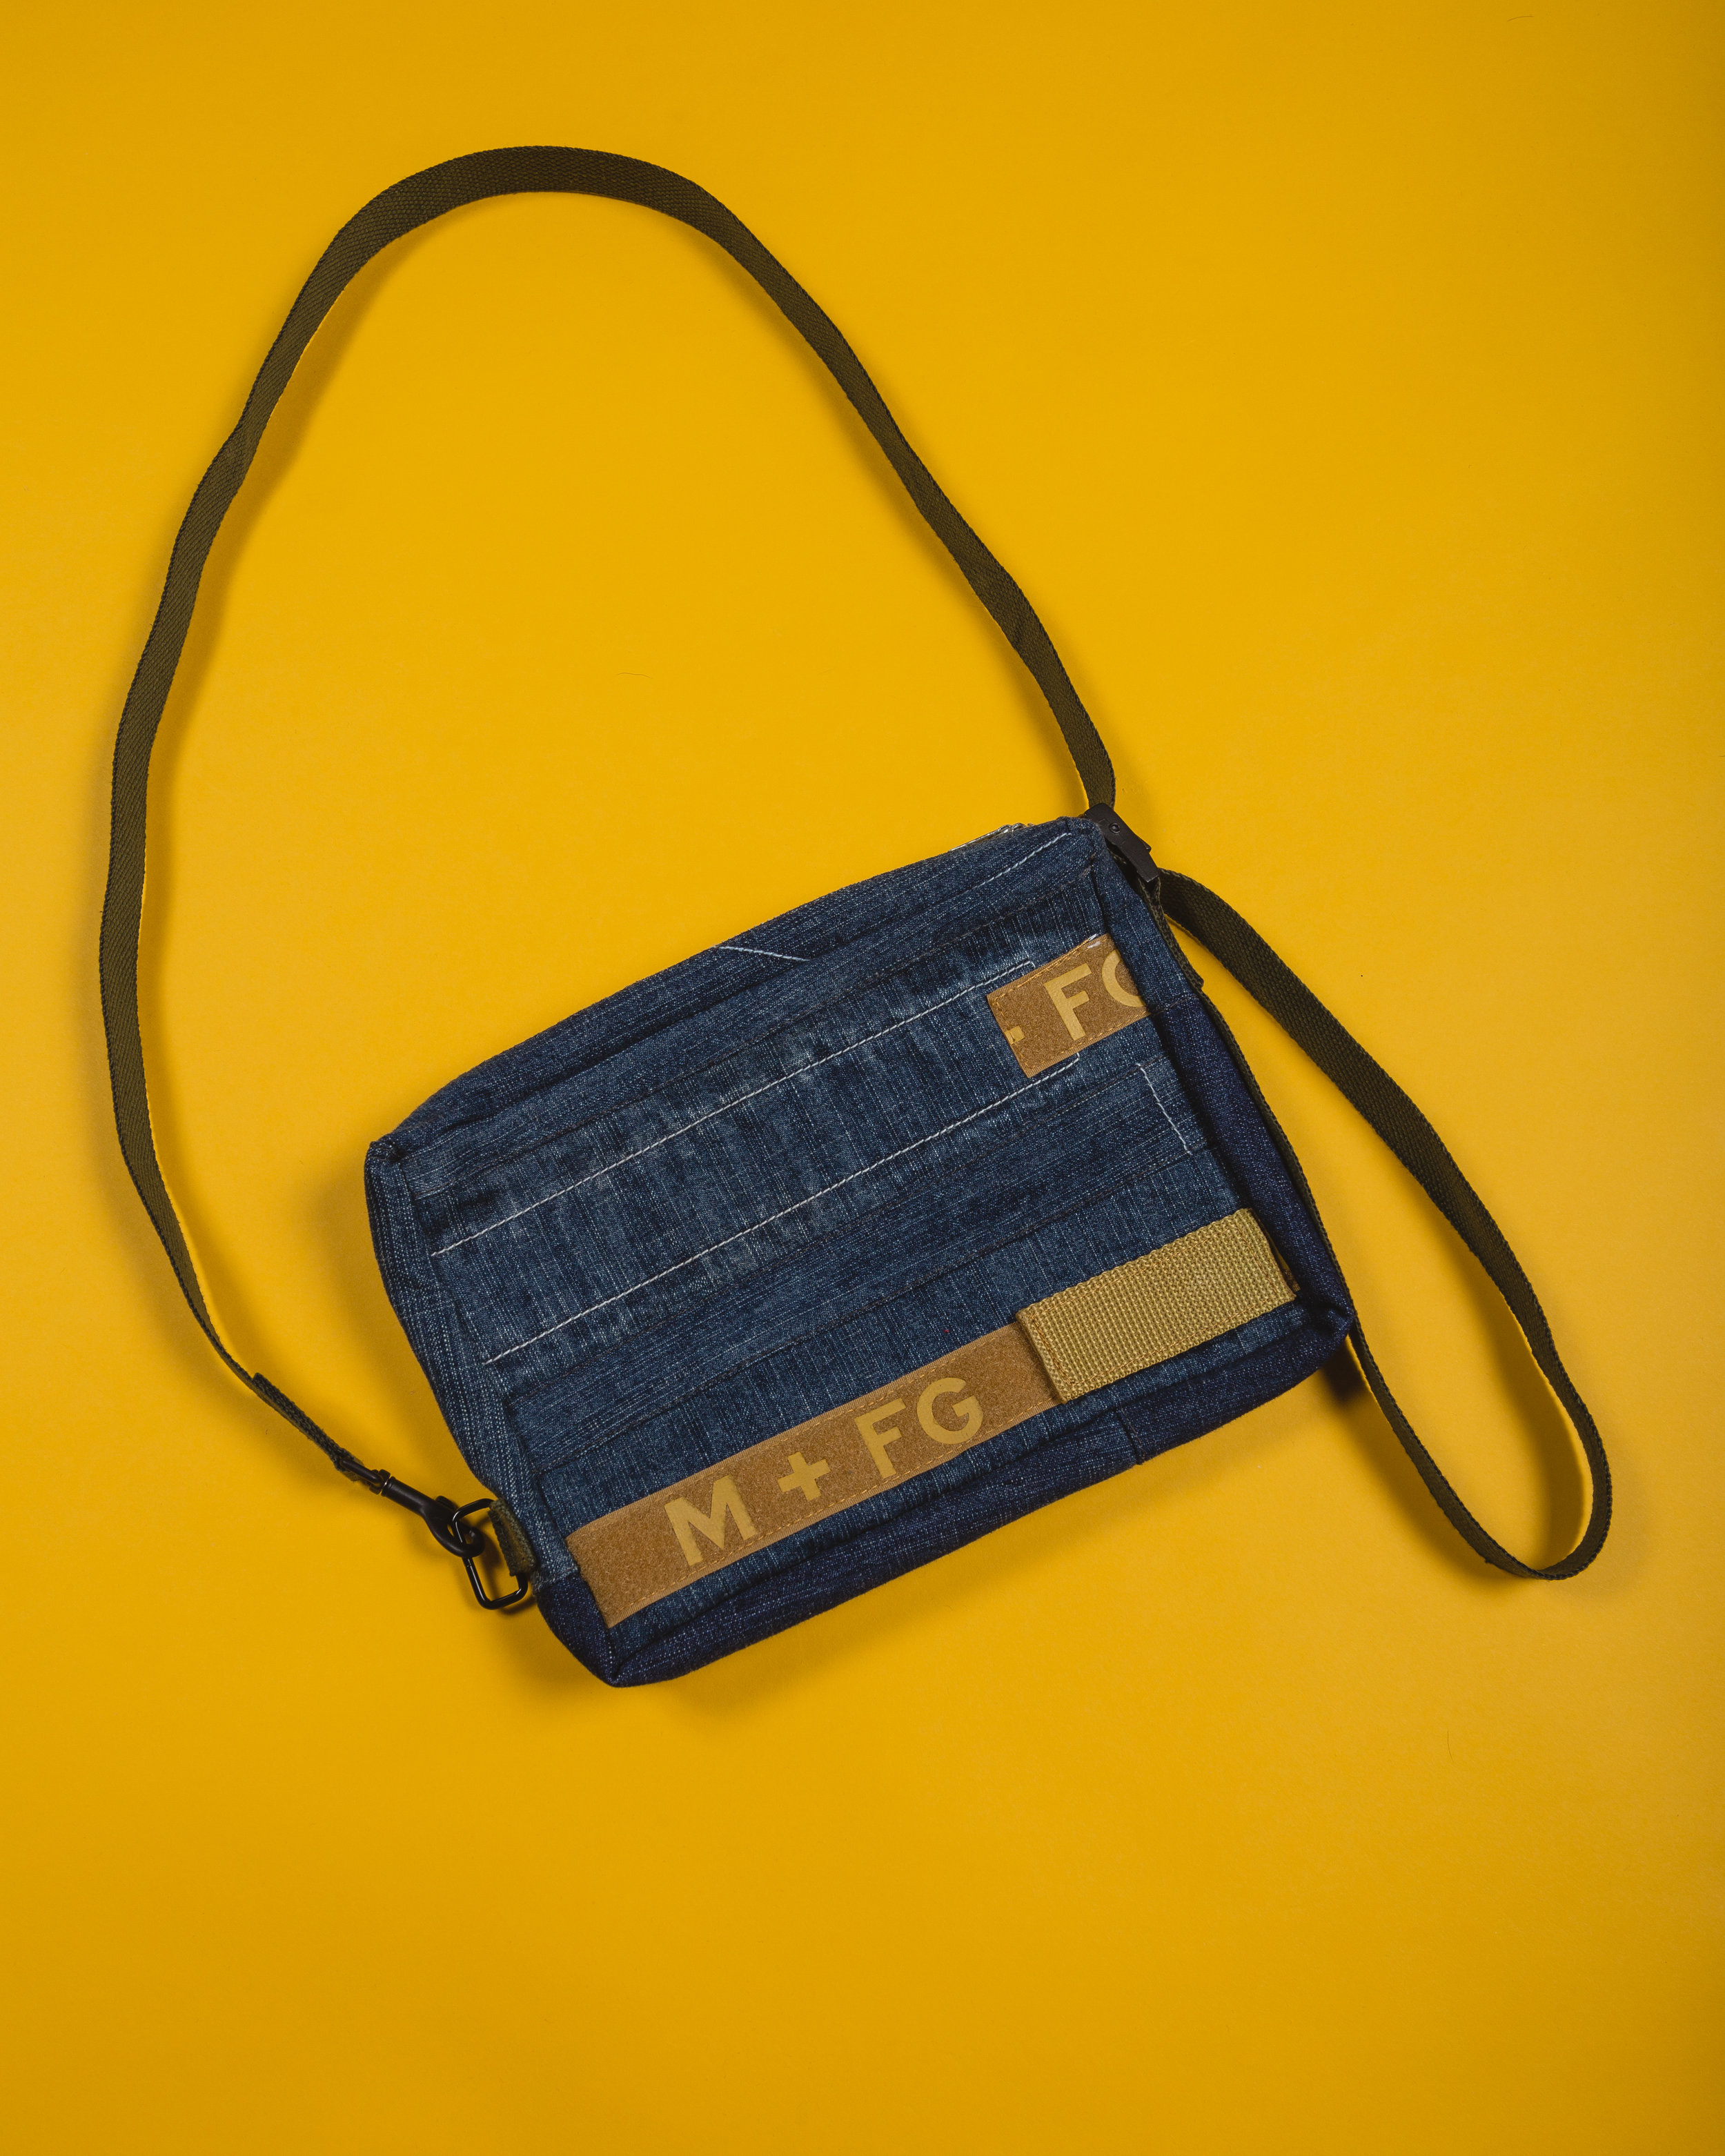 Girbaud Side bag - 1 of 2 pieces made from this pair of Girbaud jeans, the other being a backpack